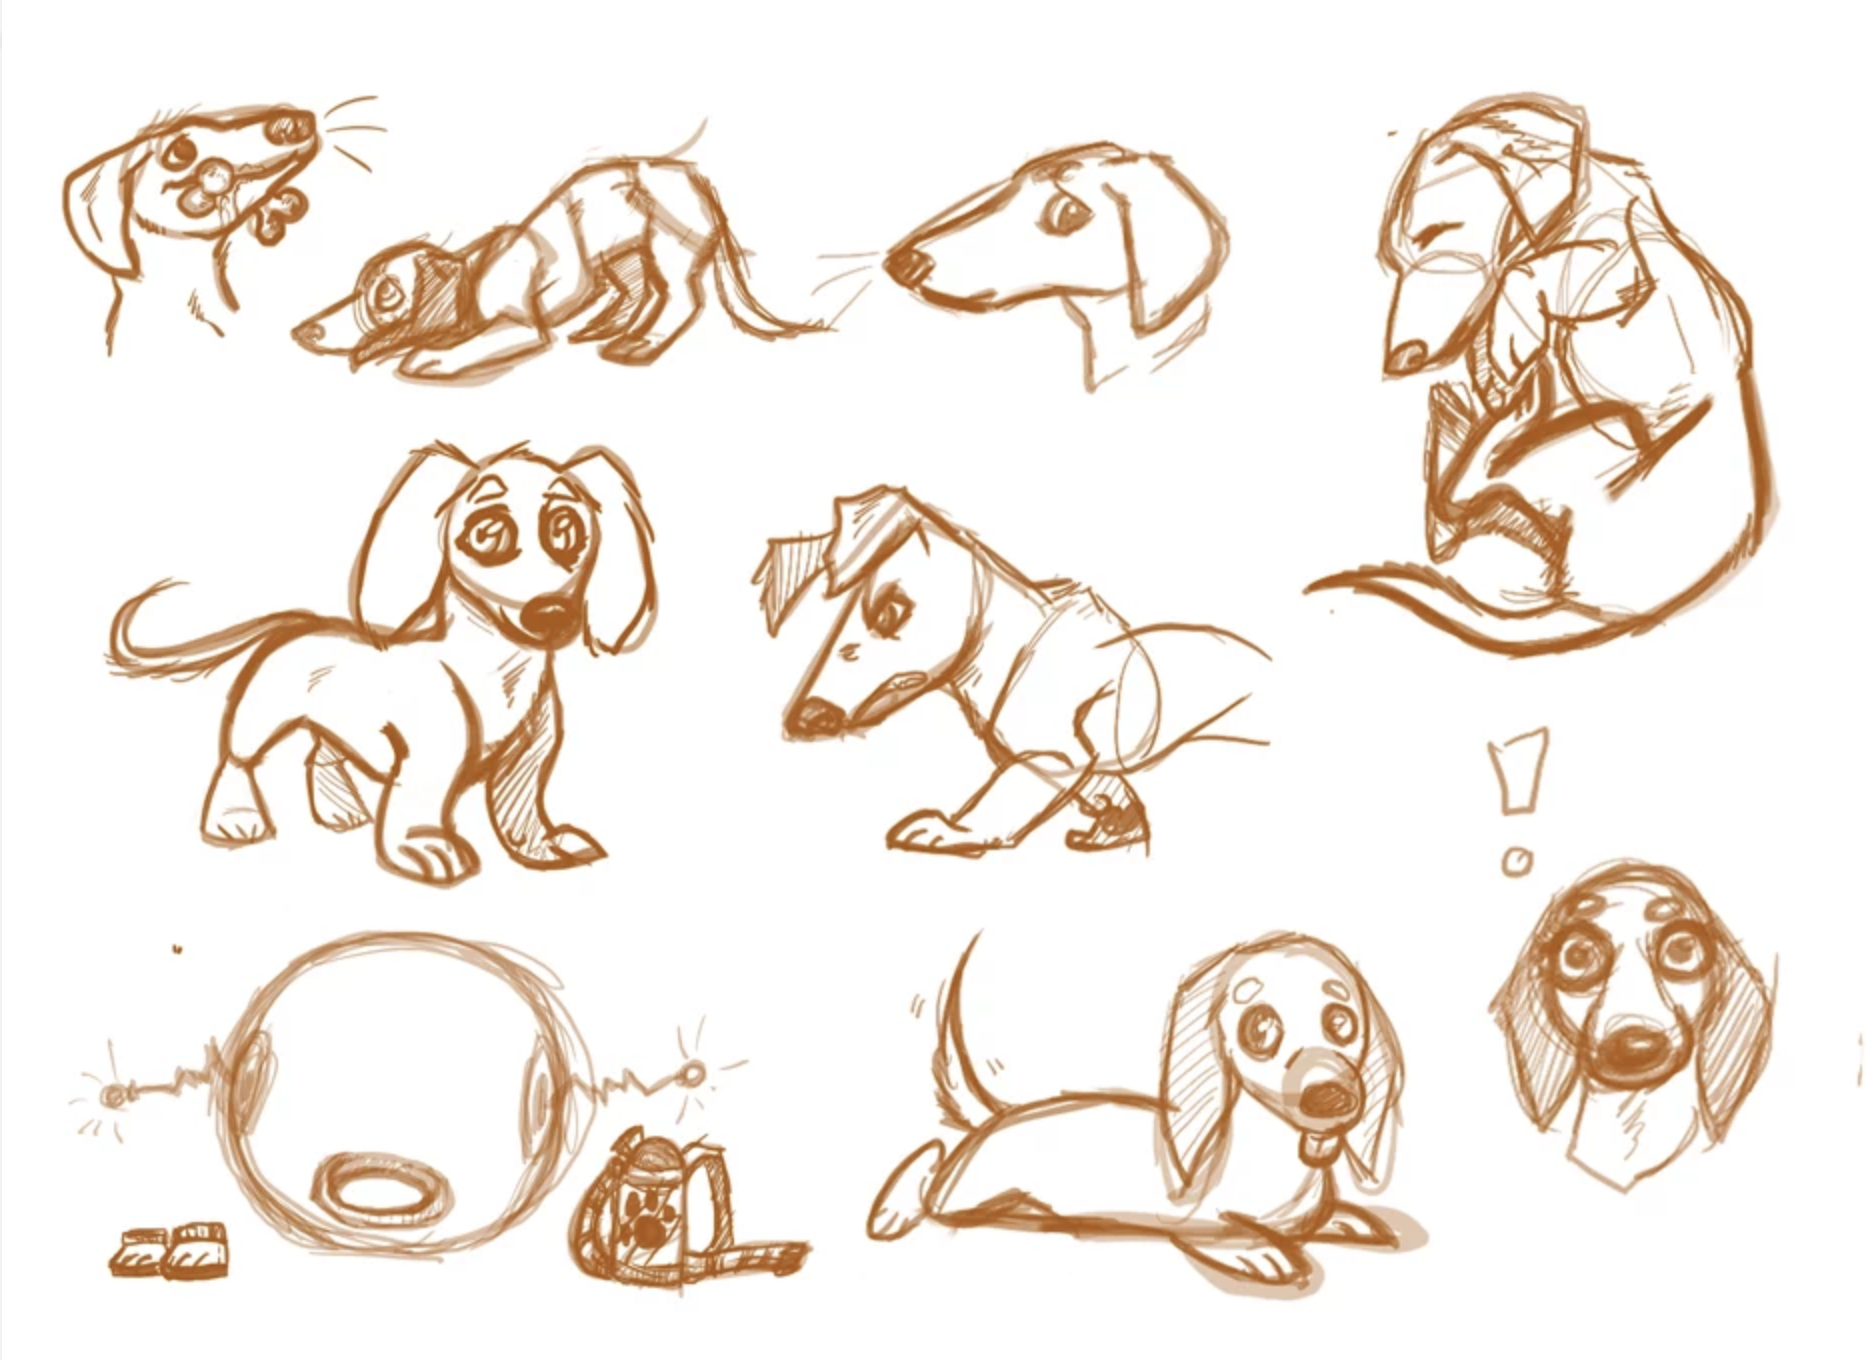 Space Dog Cadet Sketches